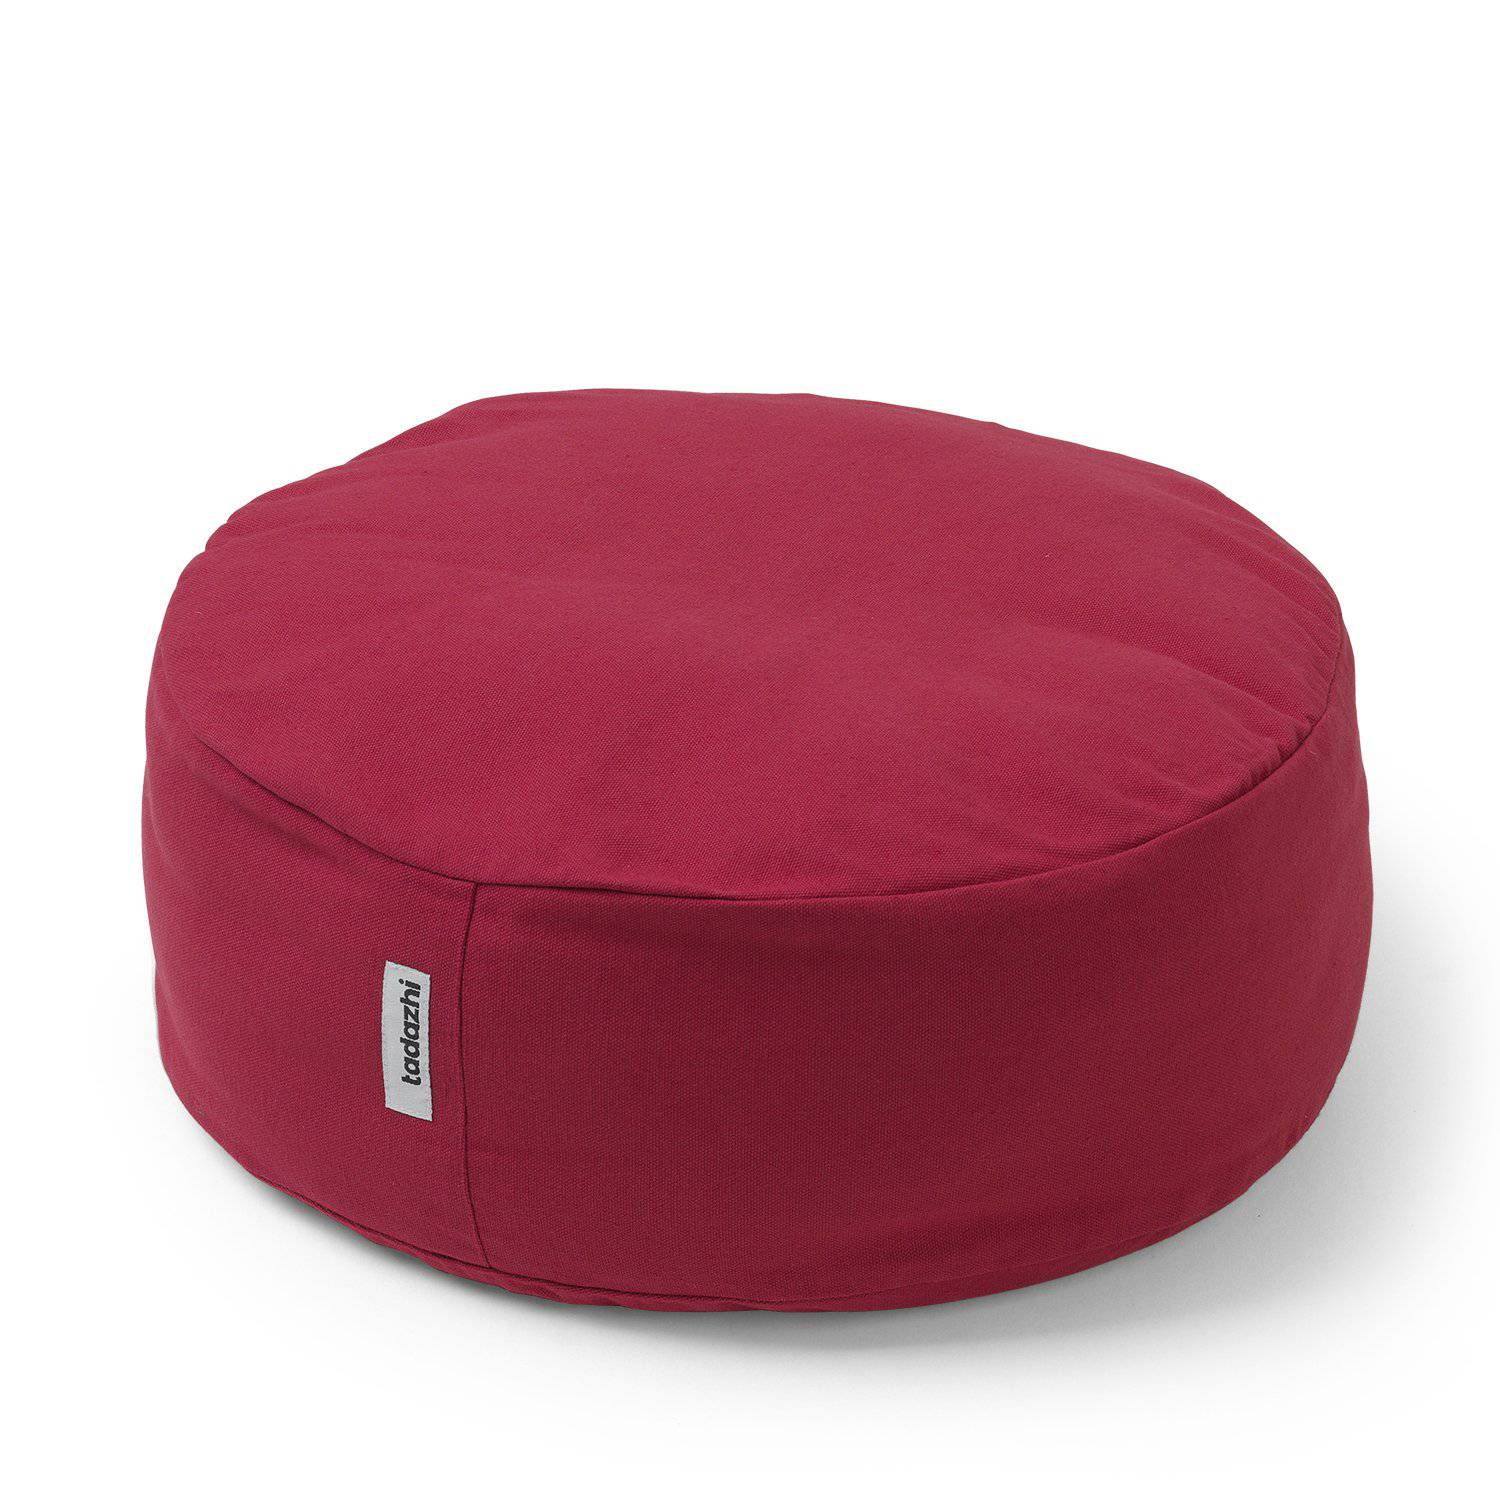 Red - Raised Circular Cushion Bed - [Holler Brighton]